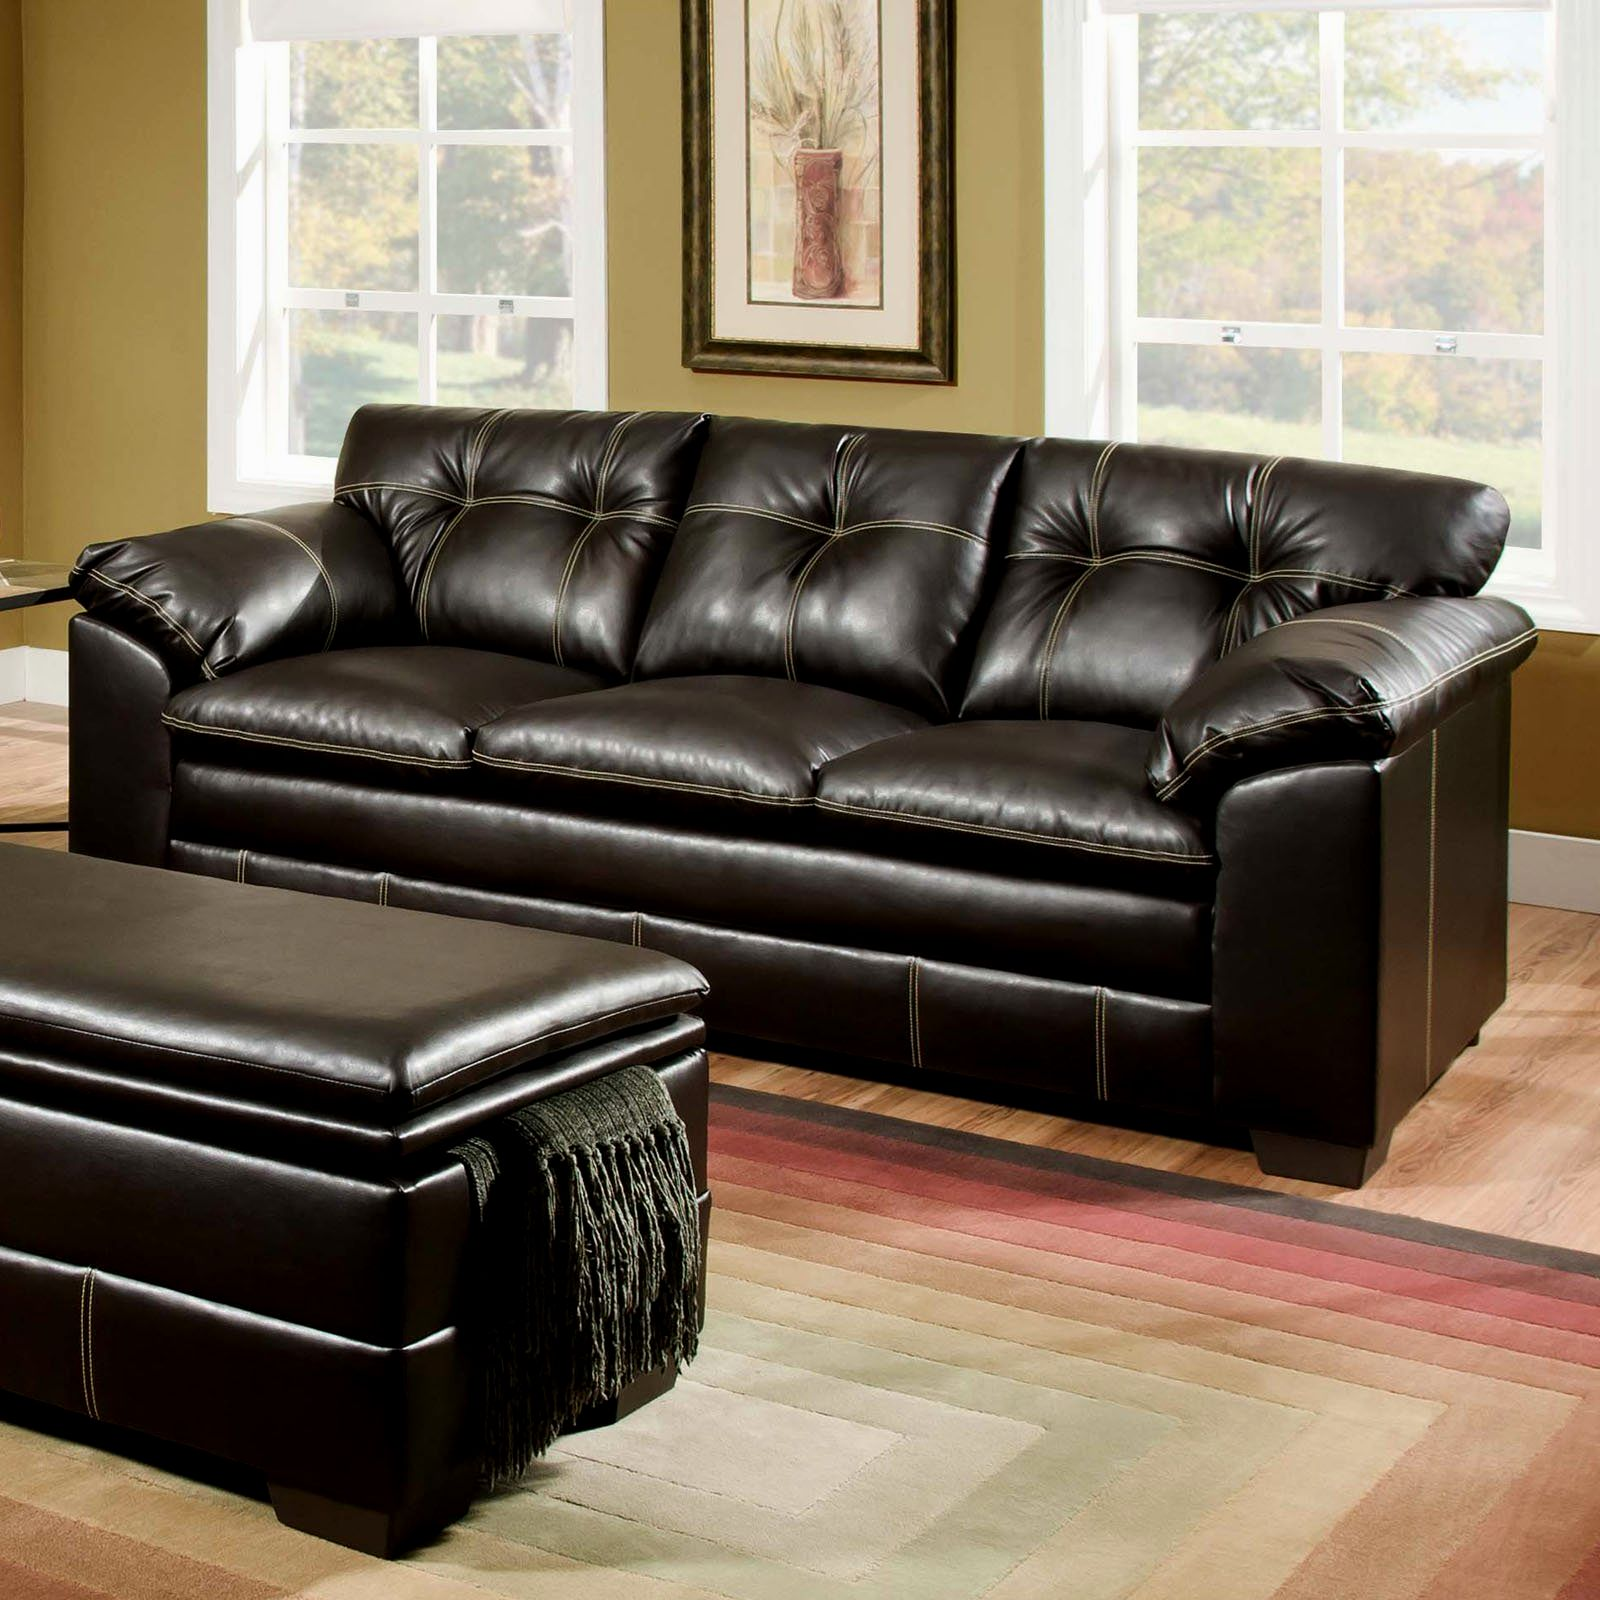 excellent loveseat sofa bed online-Wonderful Loveseat sofa Bed Decoration